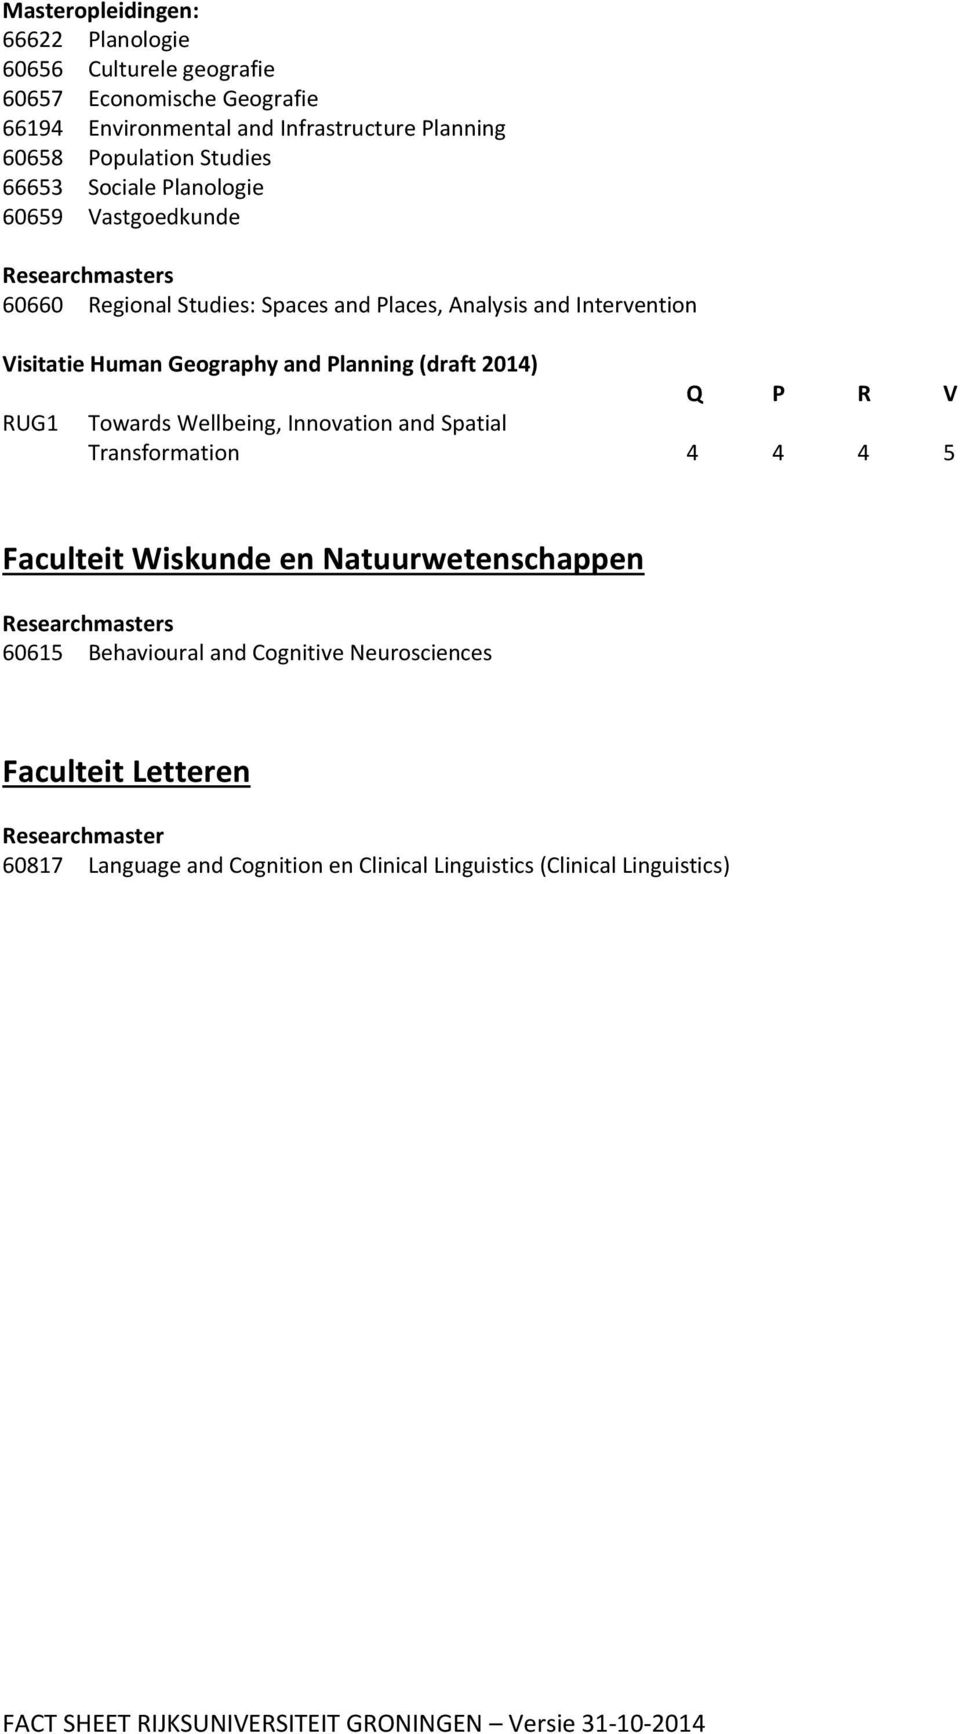 2014) Q P R V RUG1 Towards Wellbeing, Innovation and Spatial Transformation 4 4 4 5 Faculteit Wiskunde en Natuurwetenschappen Researchmasters 60615 Behavioural and Cognitive